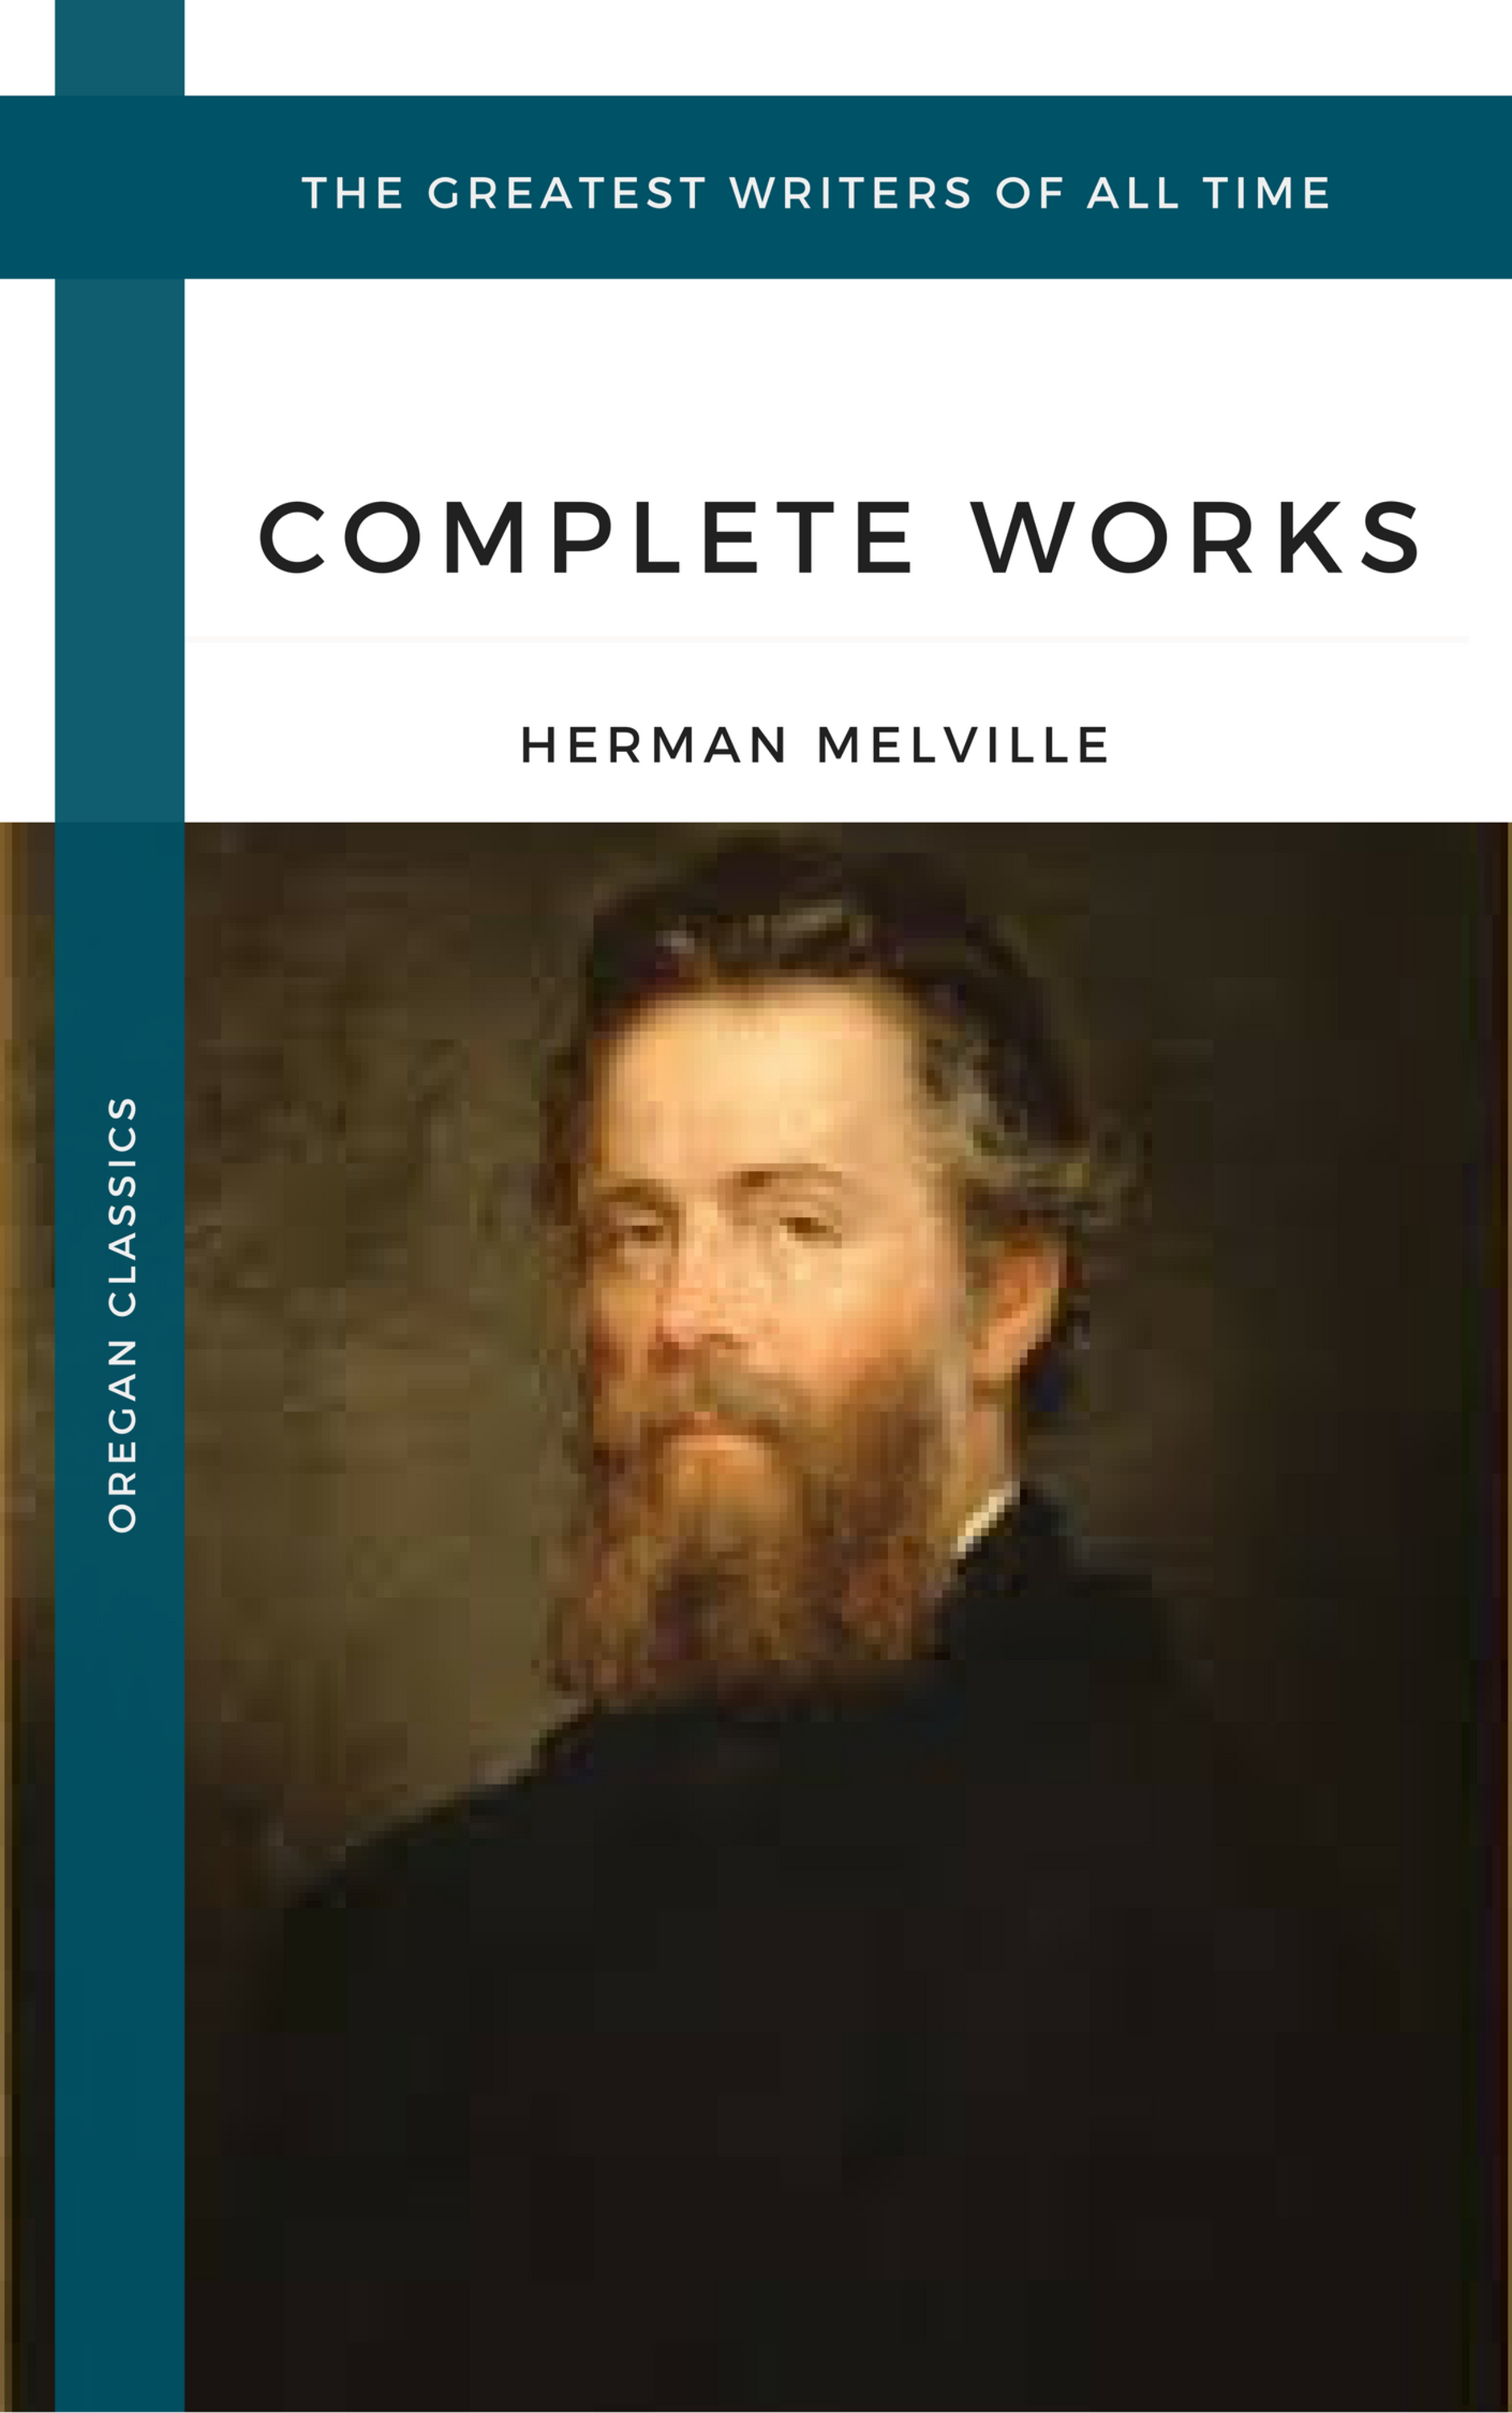 Herman Melville Melville Herman: The Complete works (Oregan Classics) (The Greatest Writers of All Time)